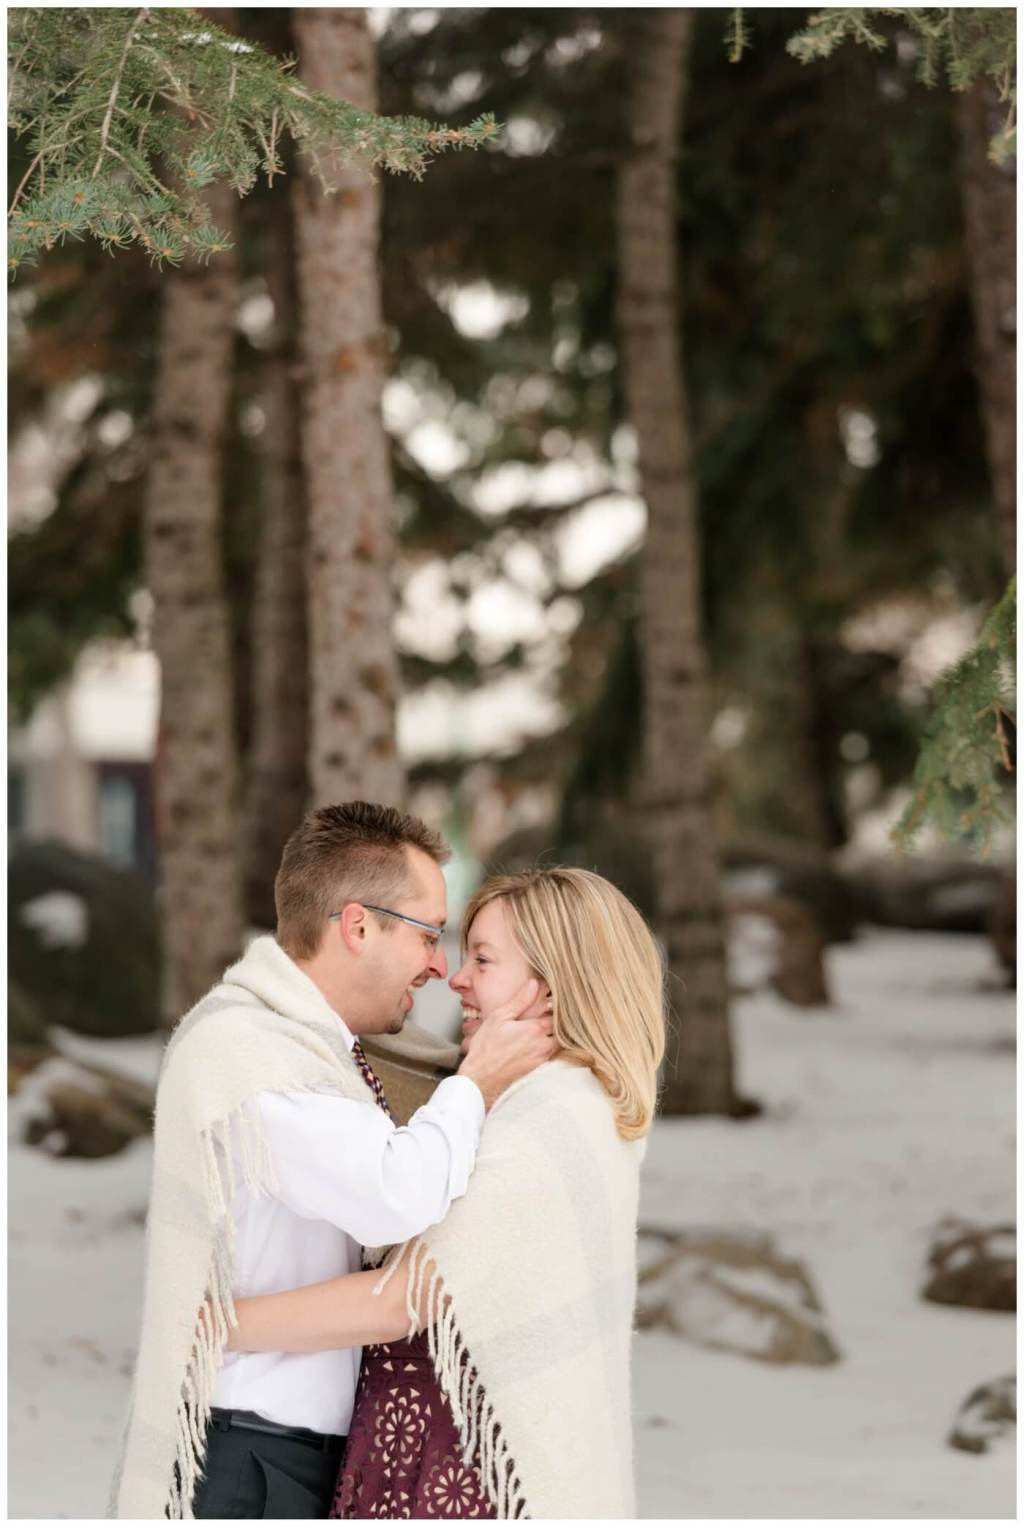 Regina Engagement Photographer - Dave-Sarah - Winter Engagement Session - Kiwanis Park Regina- Snow - Pine Trees